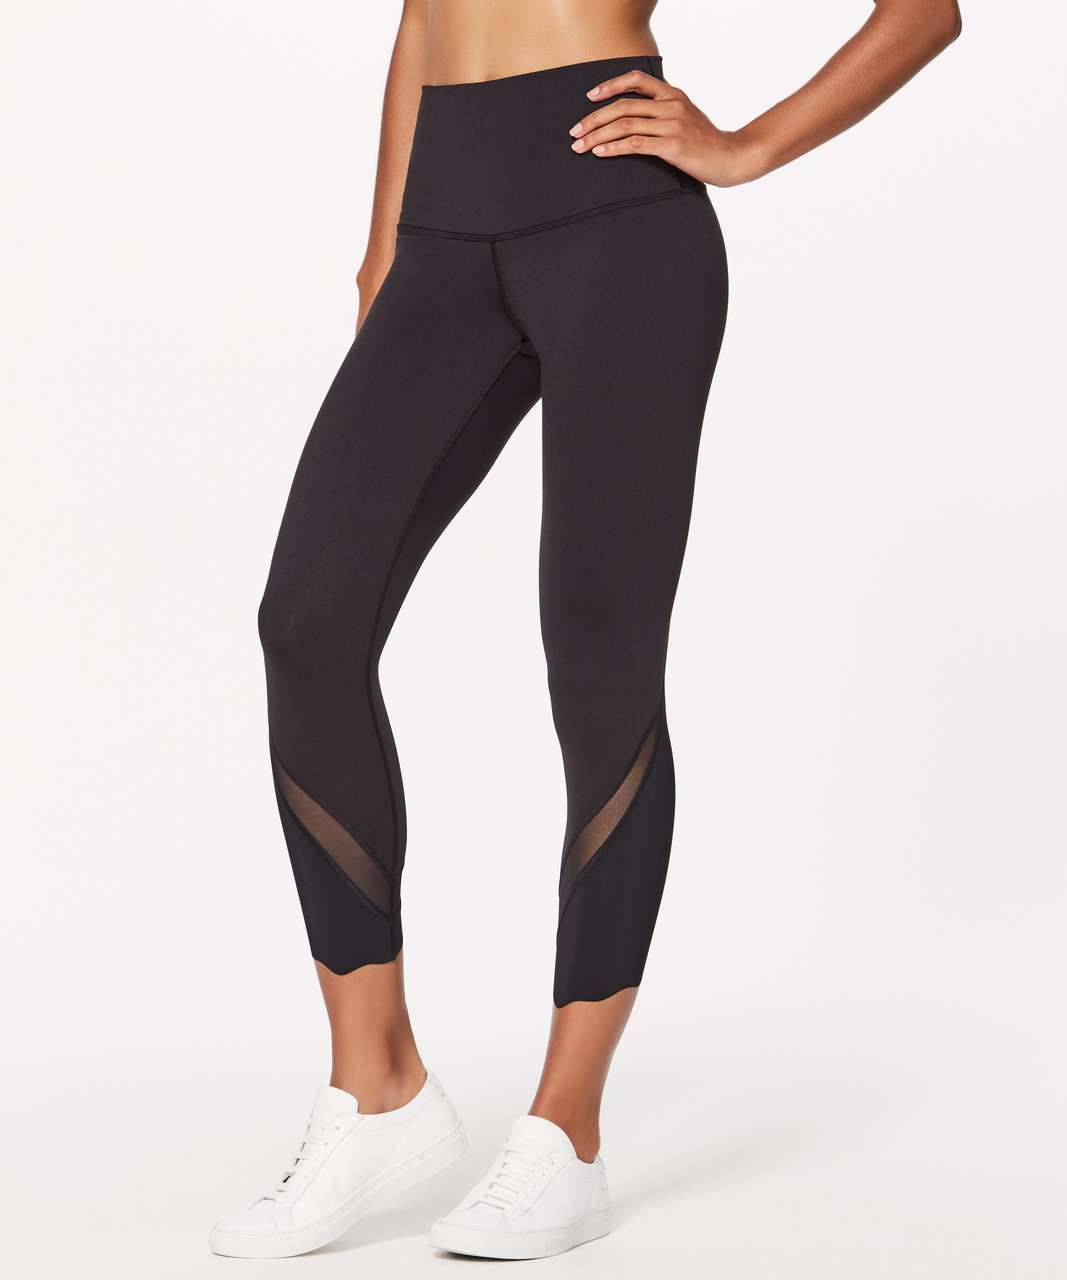 d3fb48e615 Women s technical athletic gear made to work up a sweat in. black wunder  under crop 23